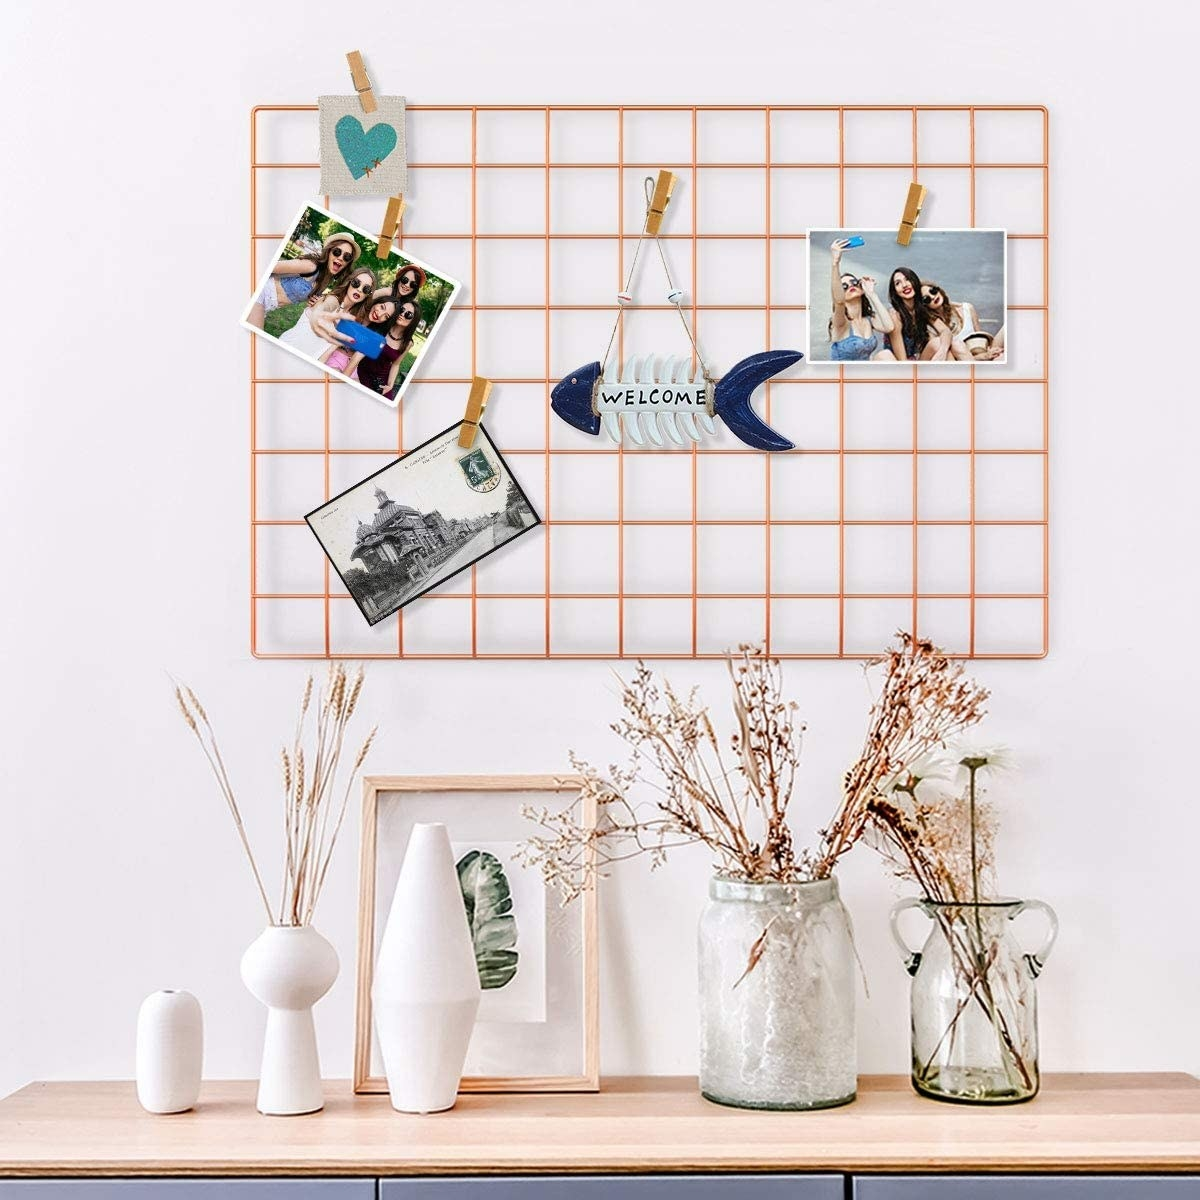 A wire wall grid is hung on a wall with pictures and mementos